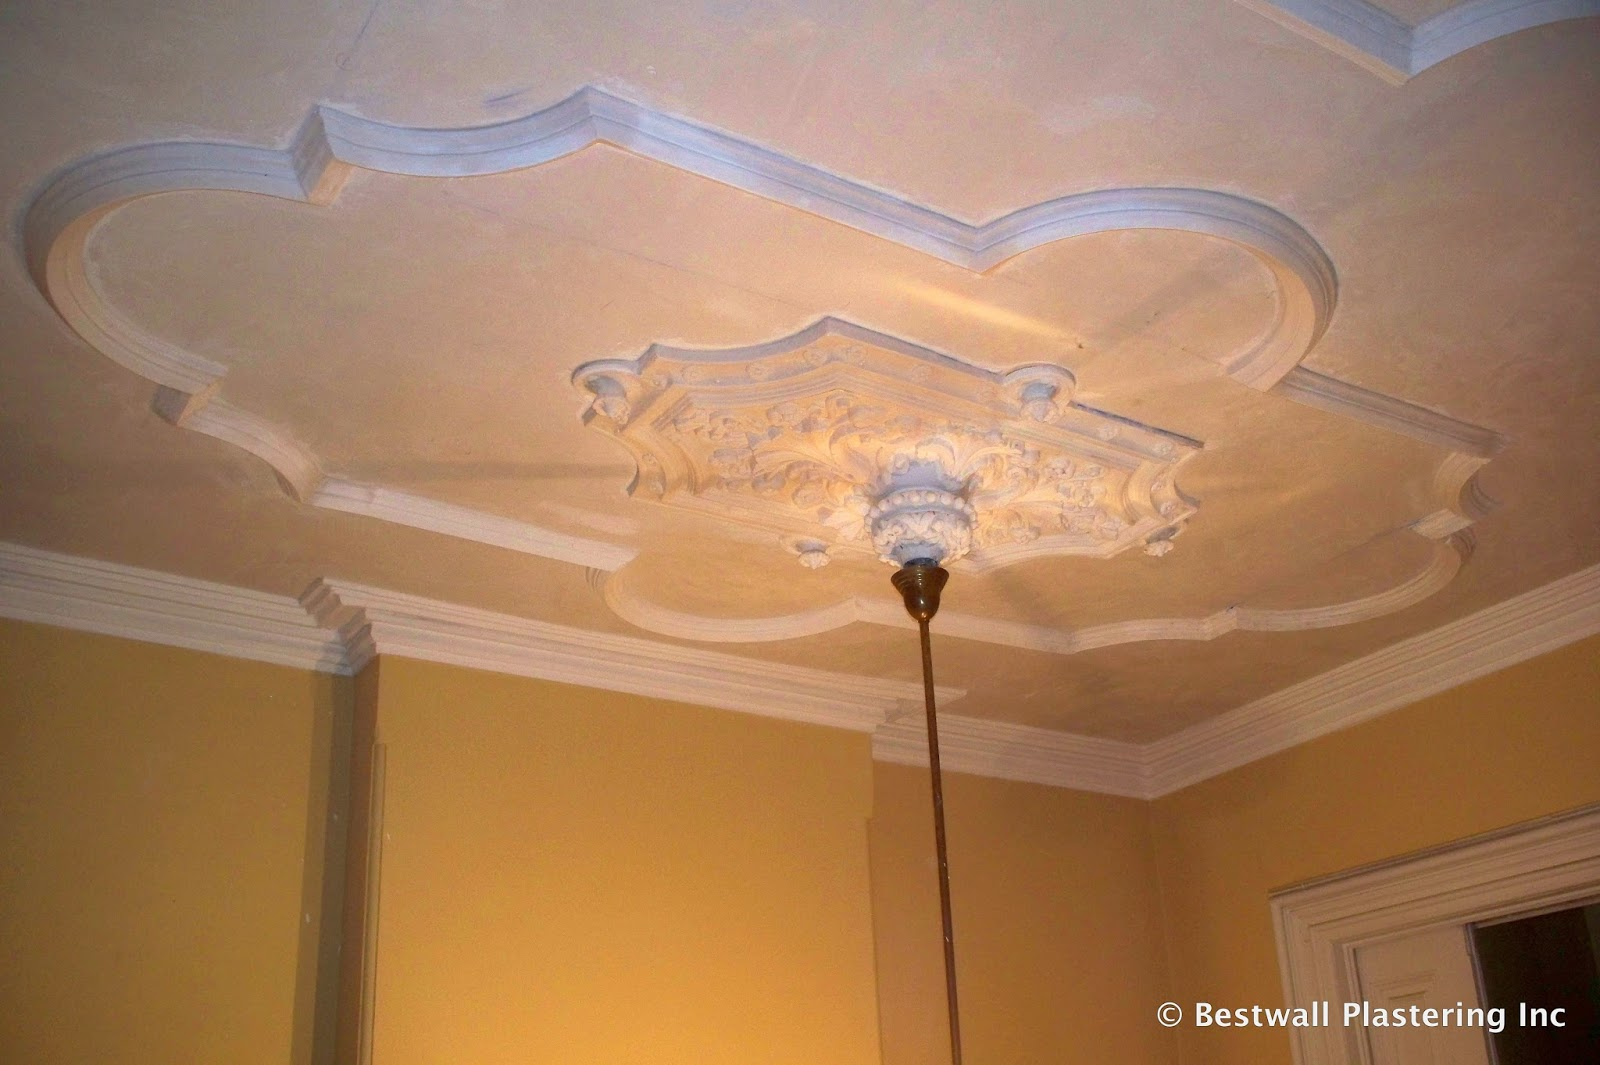 What you need to know about plastering Ornate Plaster Ceiling